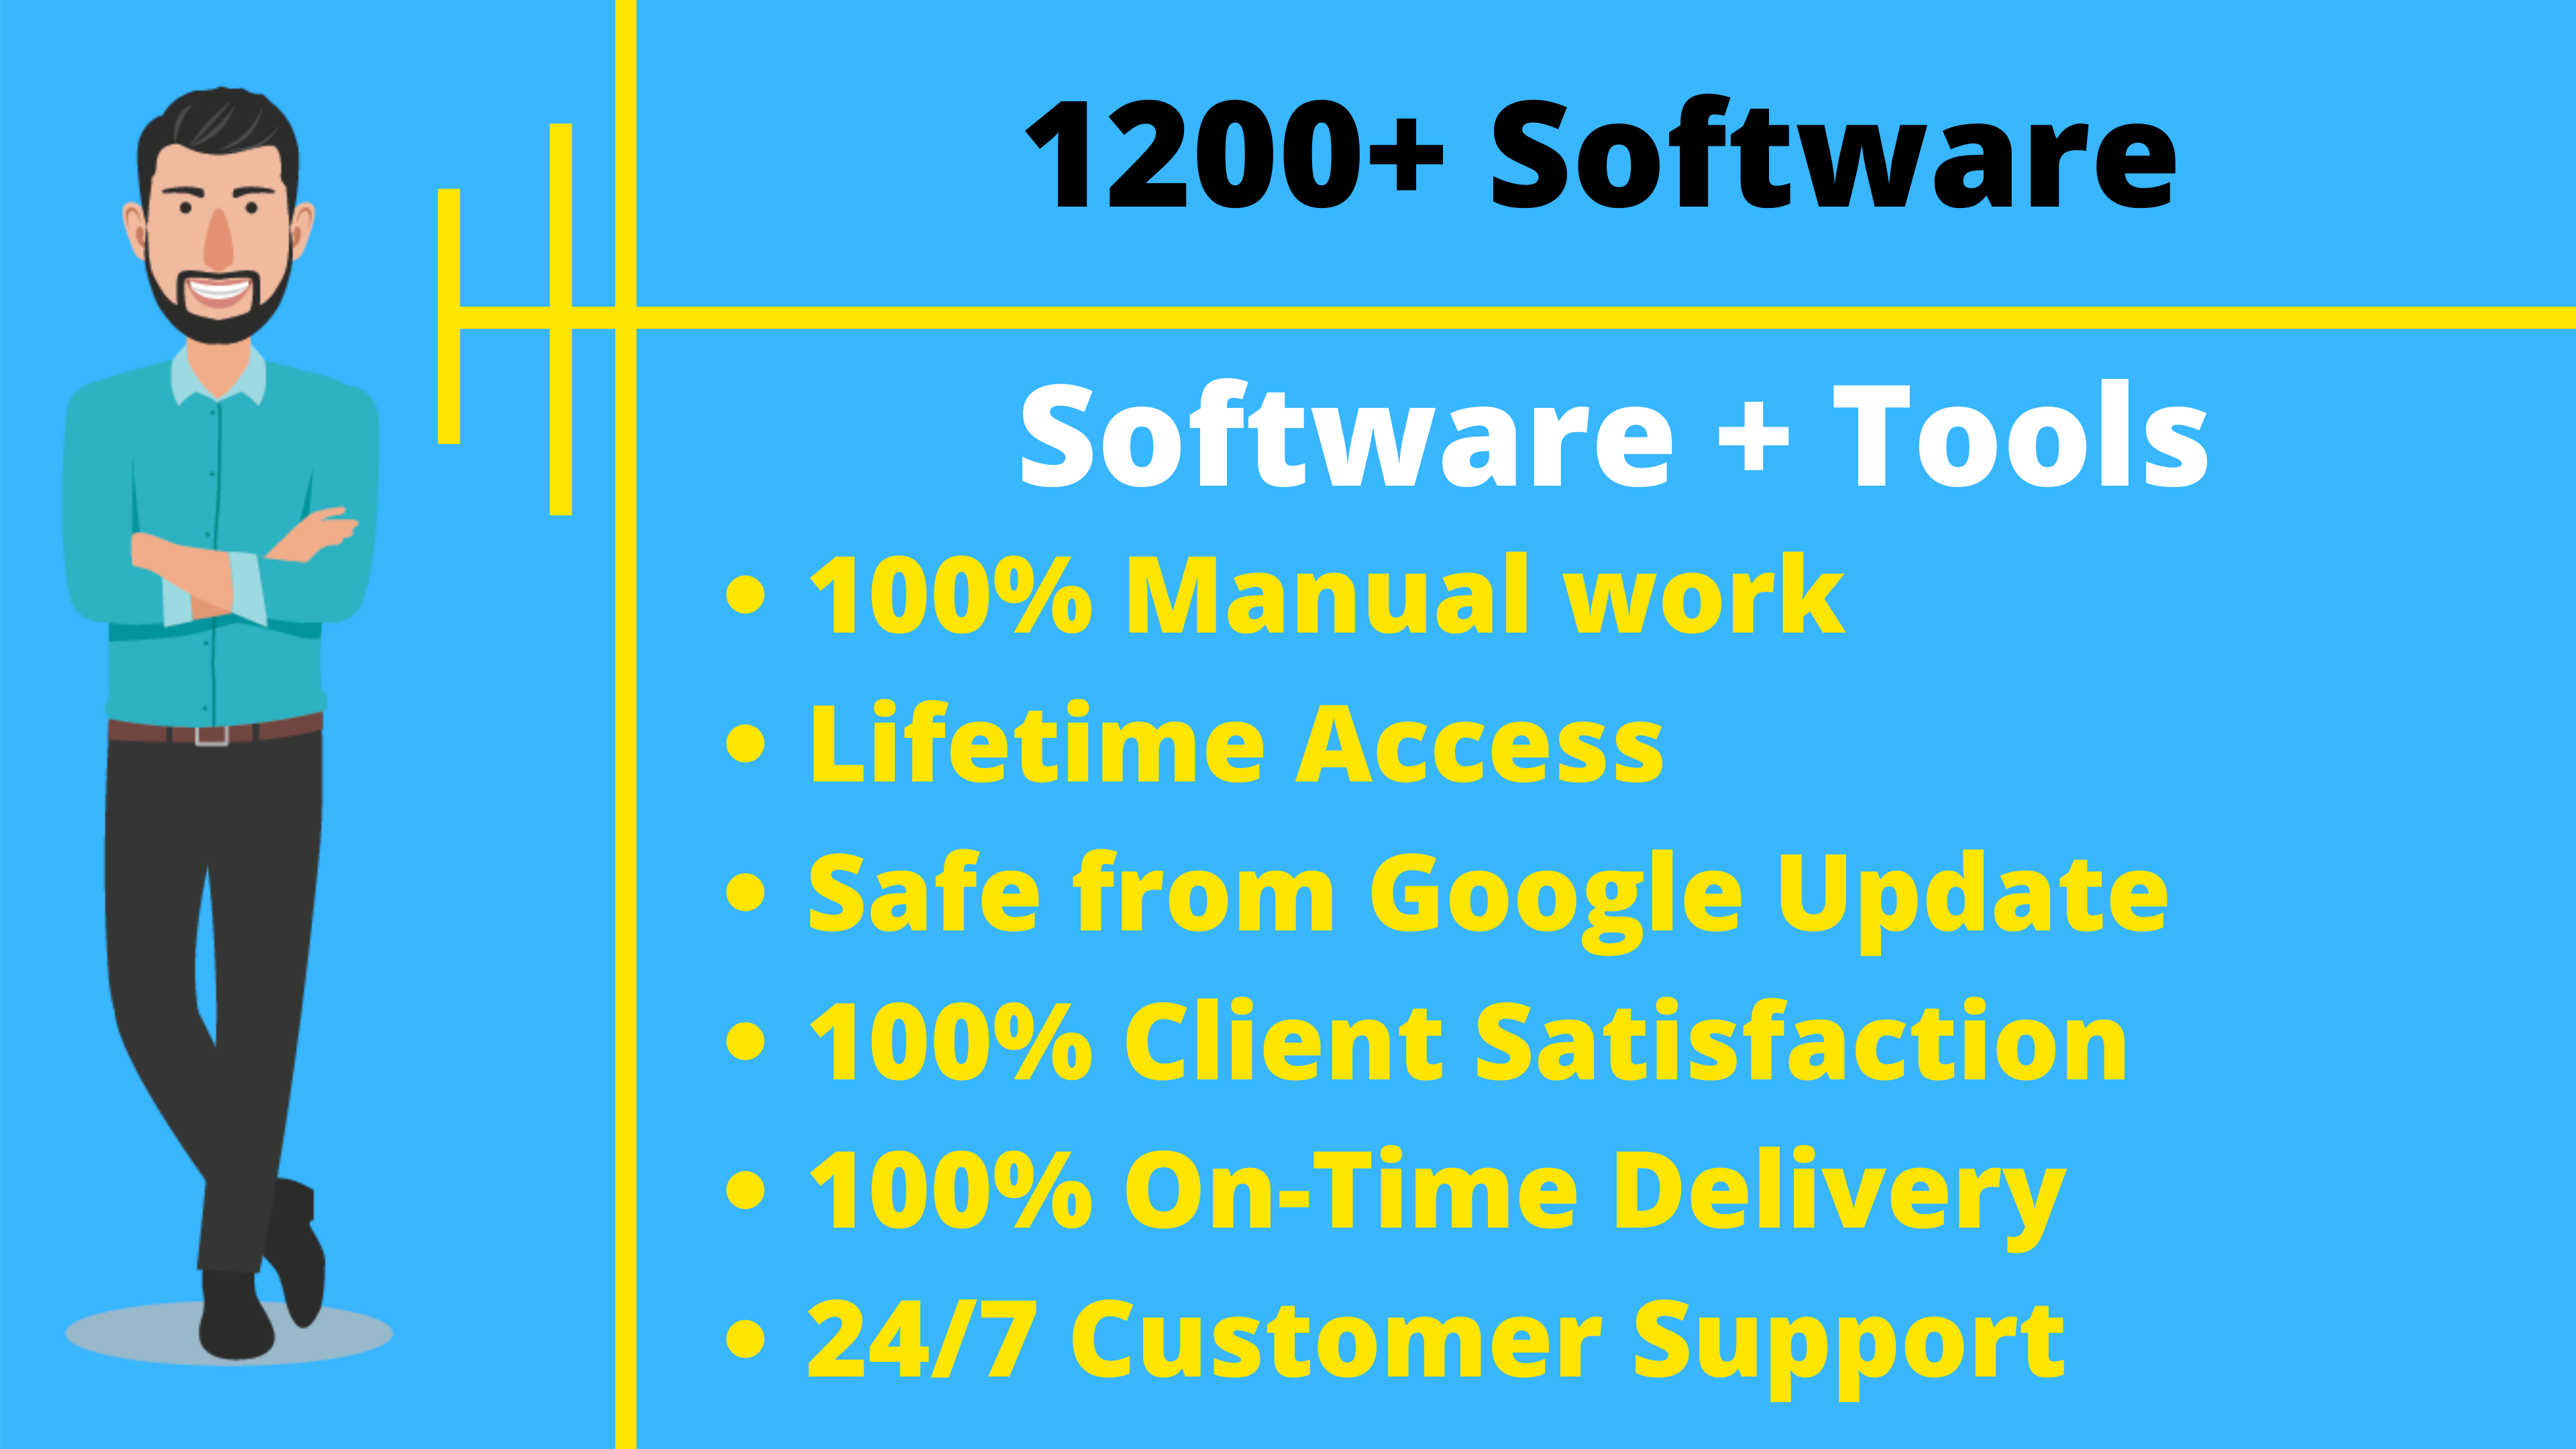 1200+ Softwares And Tools For SEO Traffic And Marketing